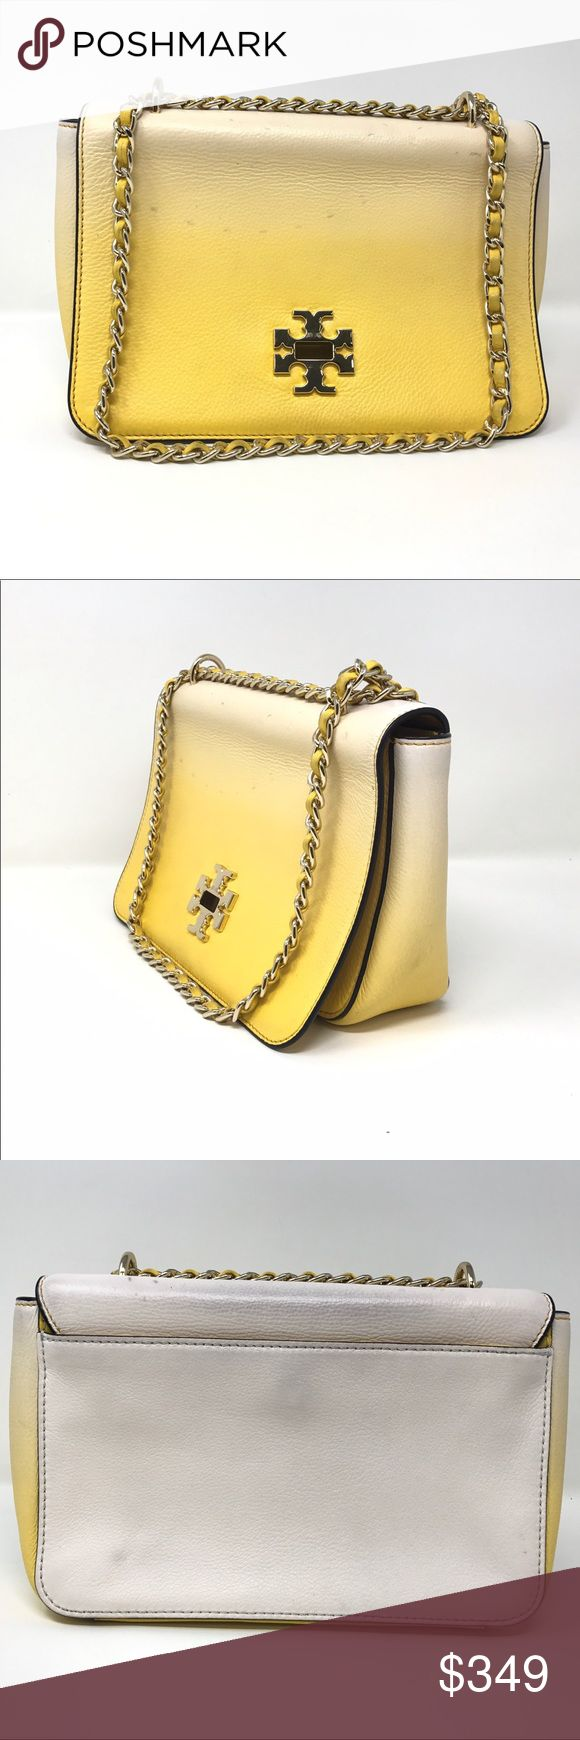 Tory Burch leather women's crossbody bag Pre owned bag in very good condition. Some some stains as u can see in pictures. Size  ( H*L*W= 6*9*3) resoanable offers welcome. Tory Burch Bags Crossbody Bags